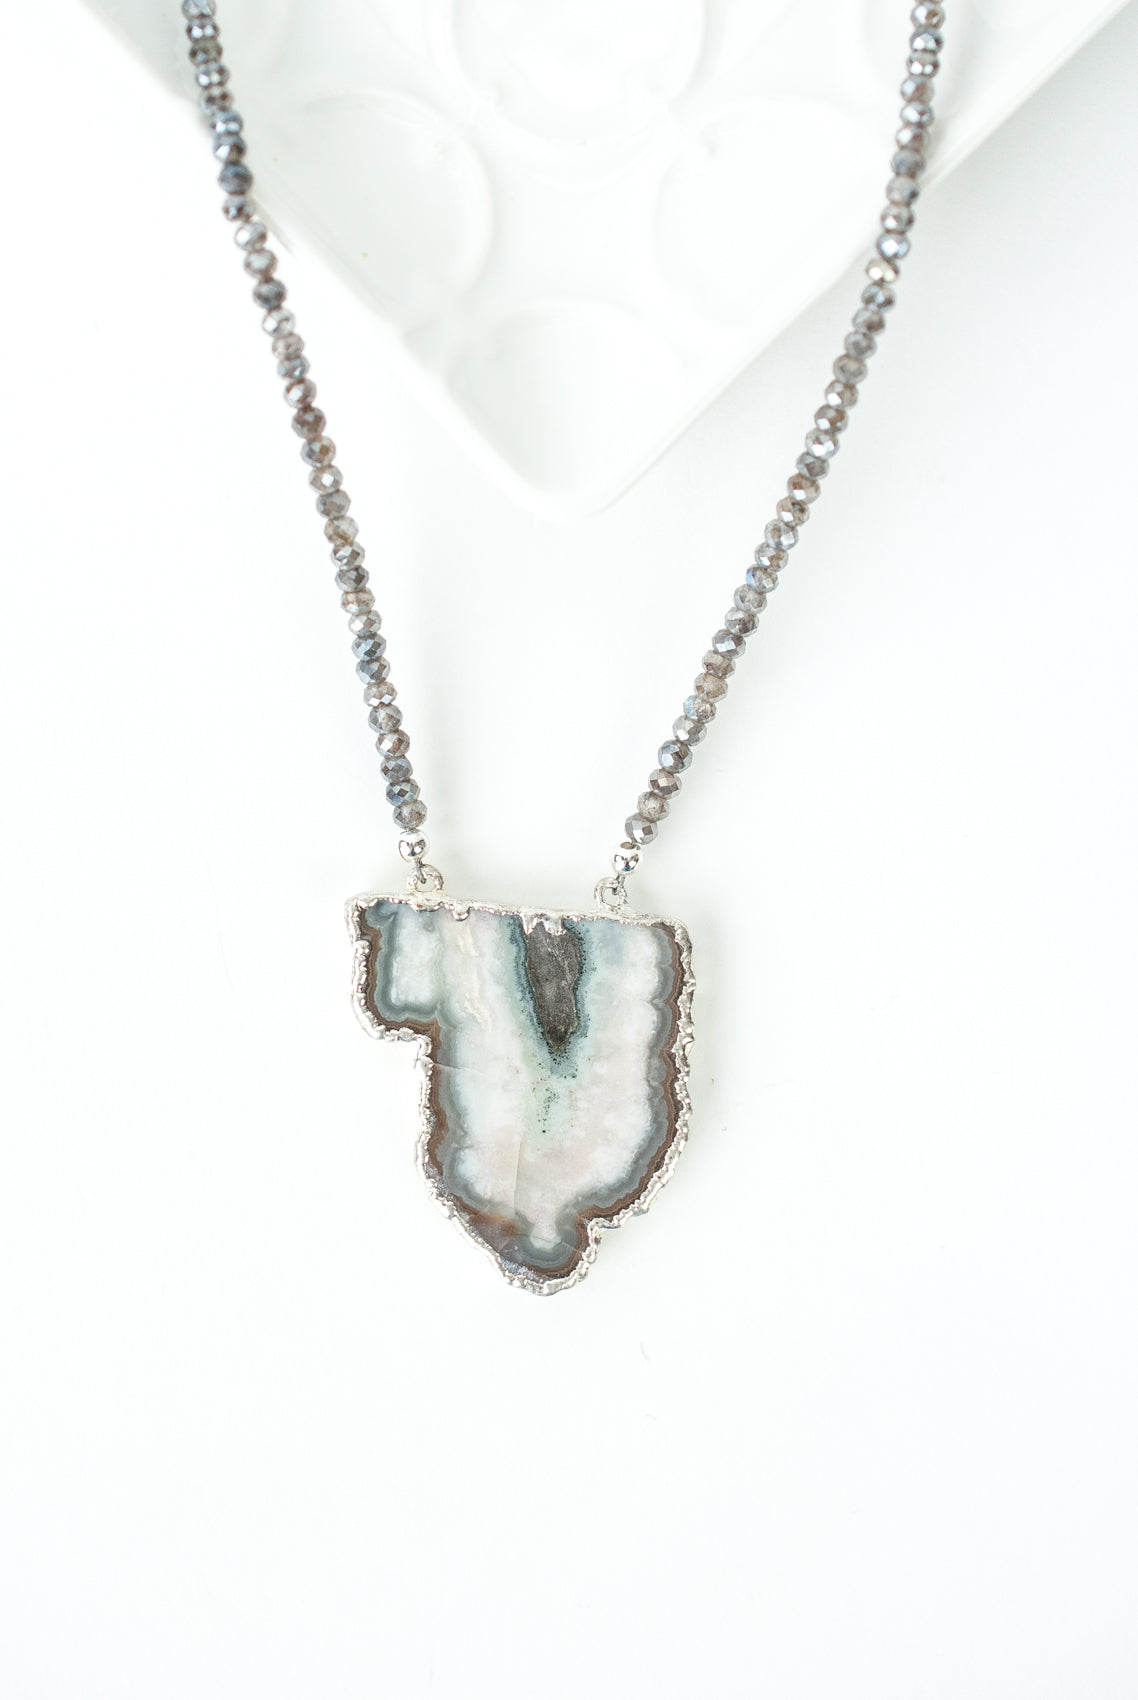 "One of a Kind 26-28"" Moonstone, Mineral Slice Focal Necklace"